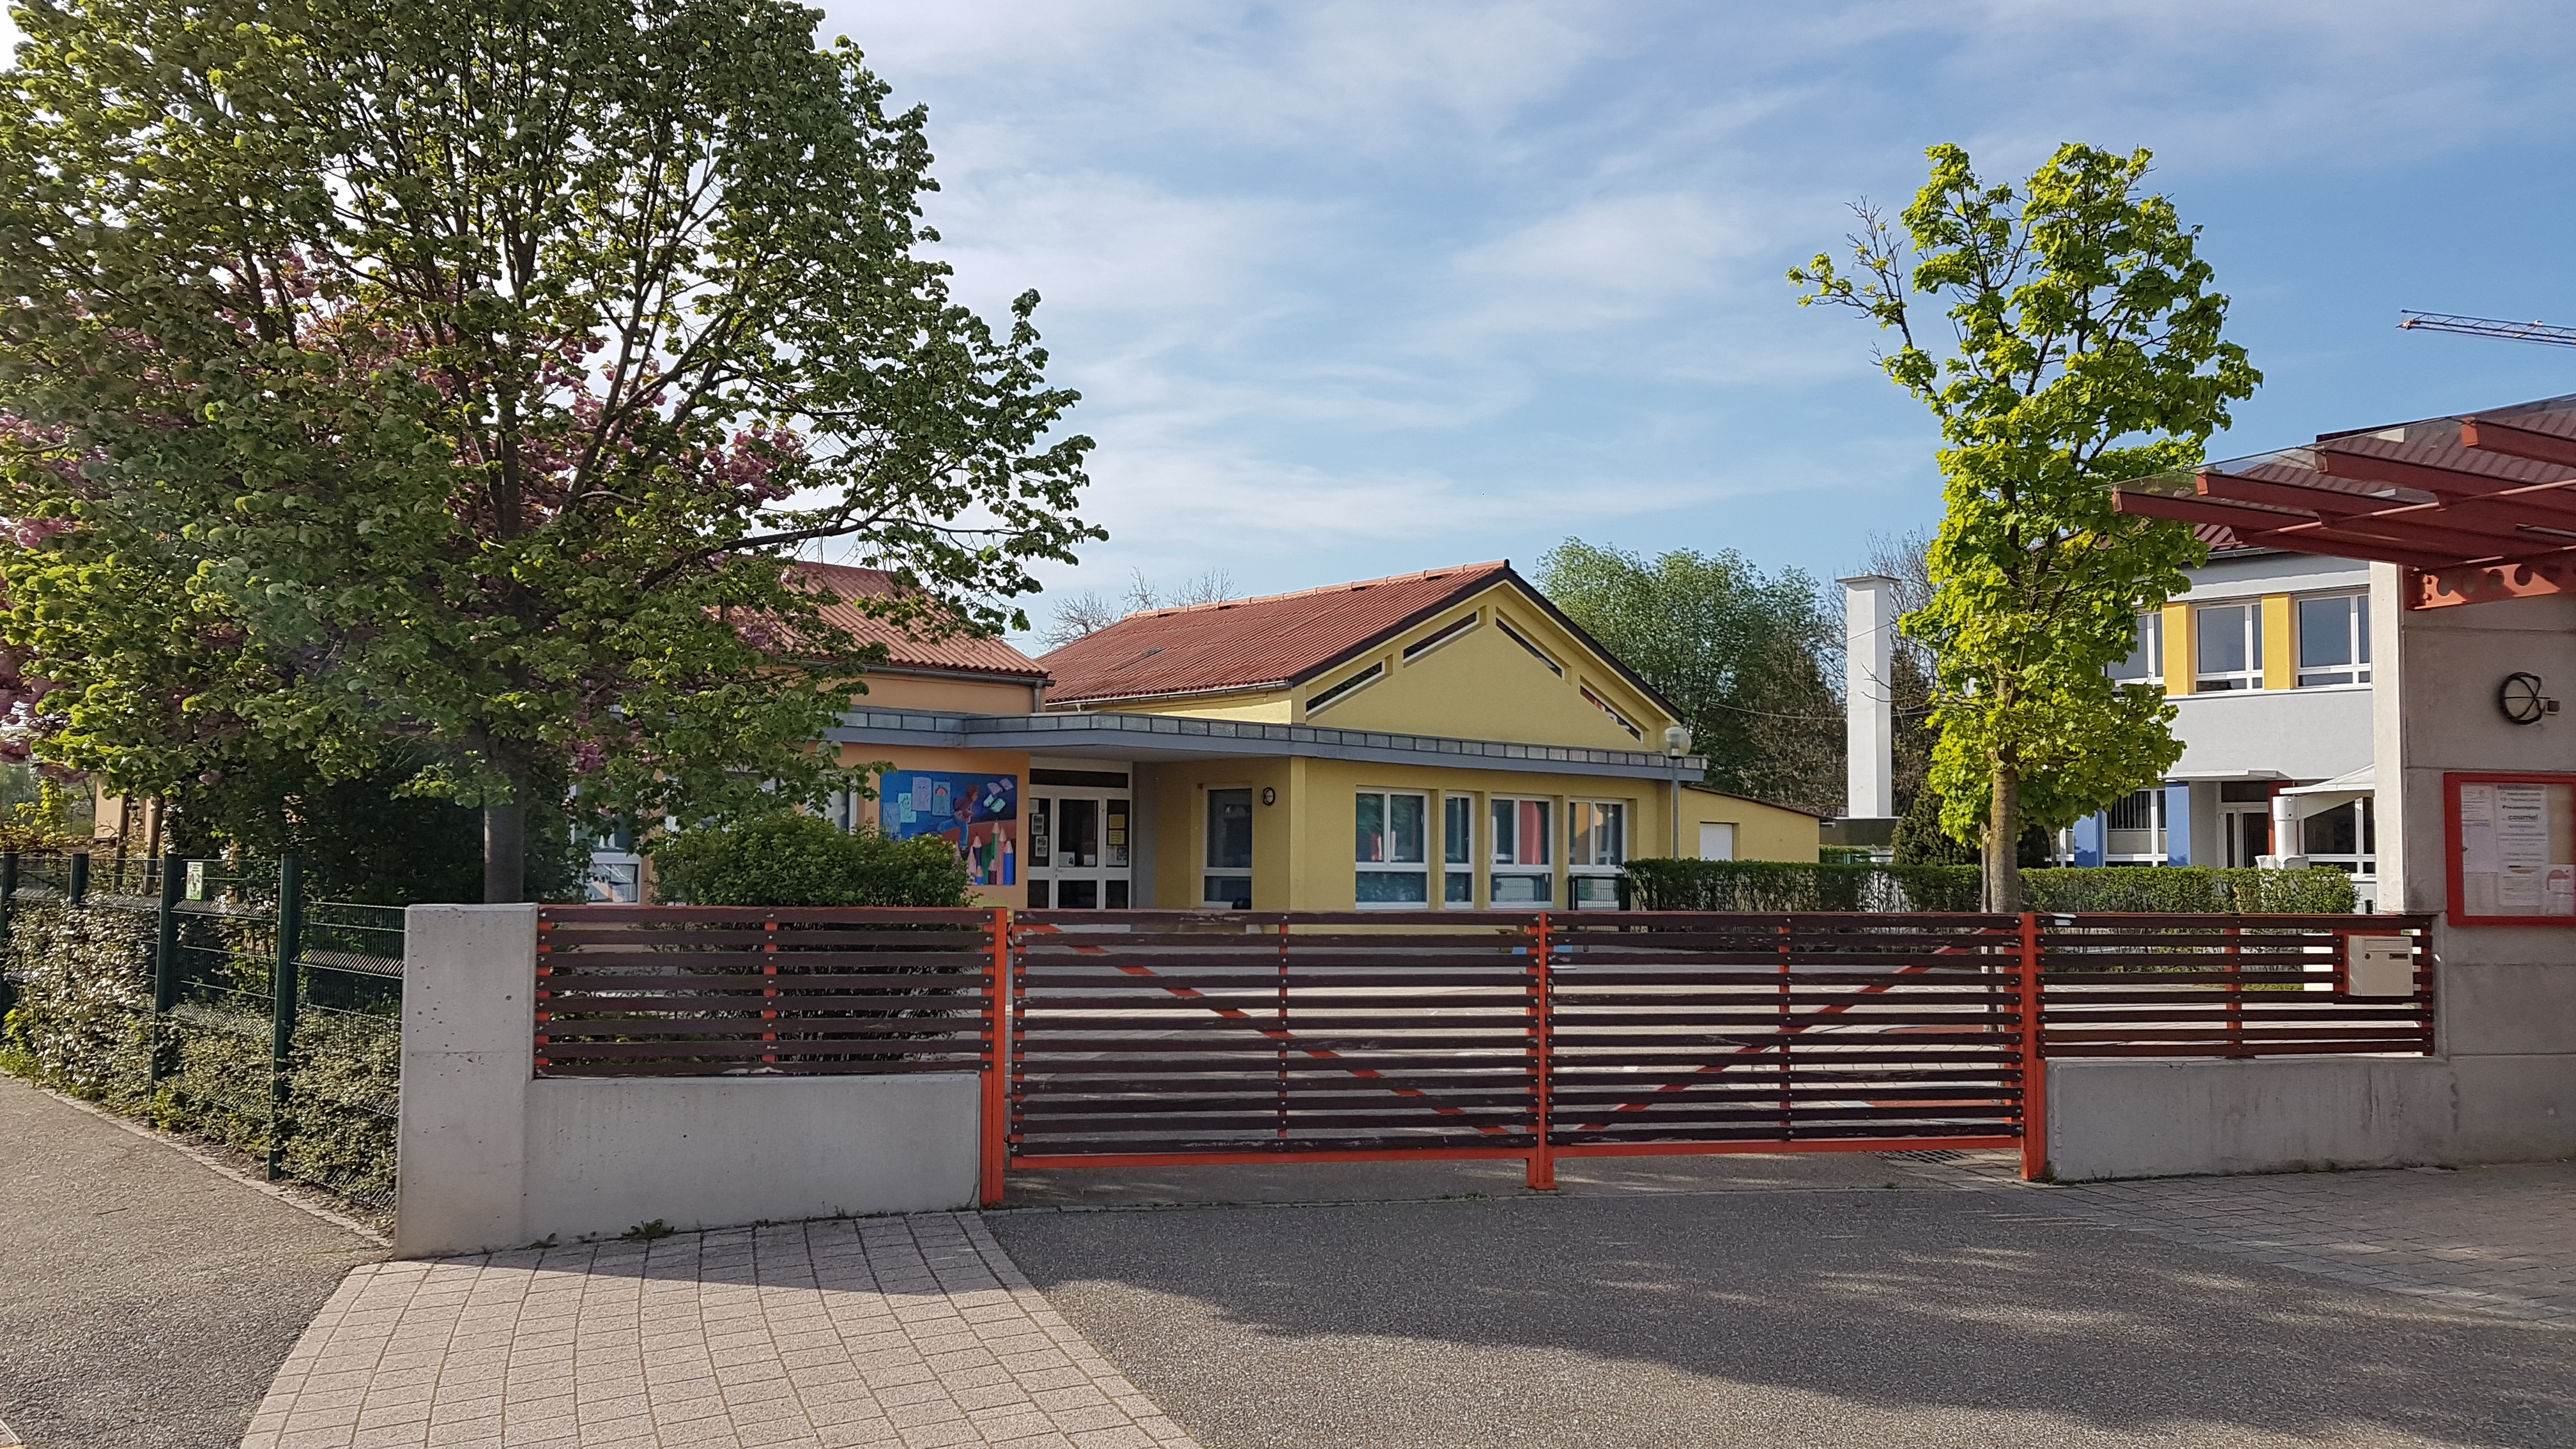 Groupe scolaire maternelle _2_.jpg